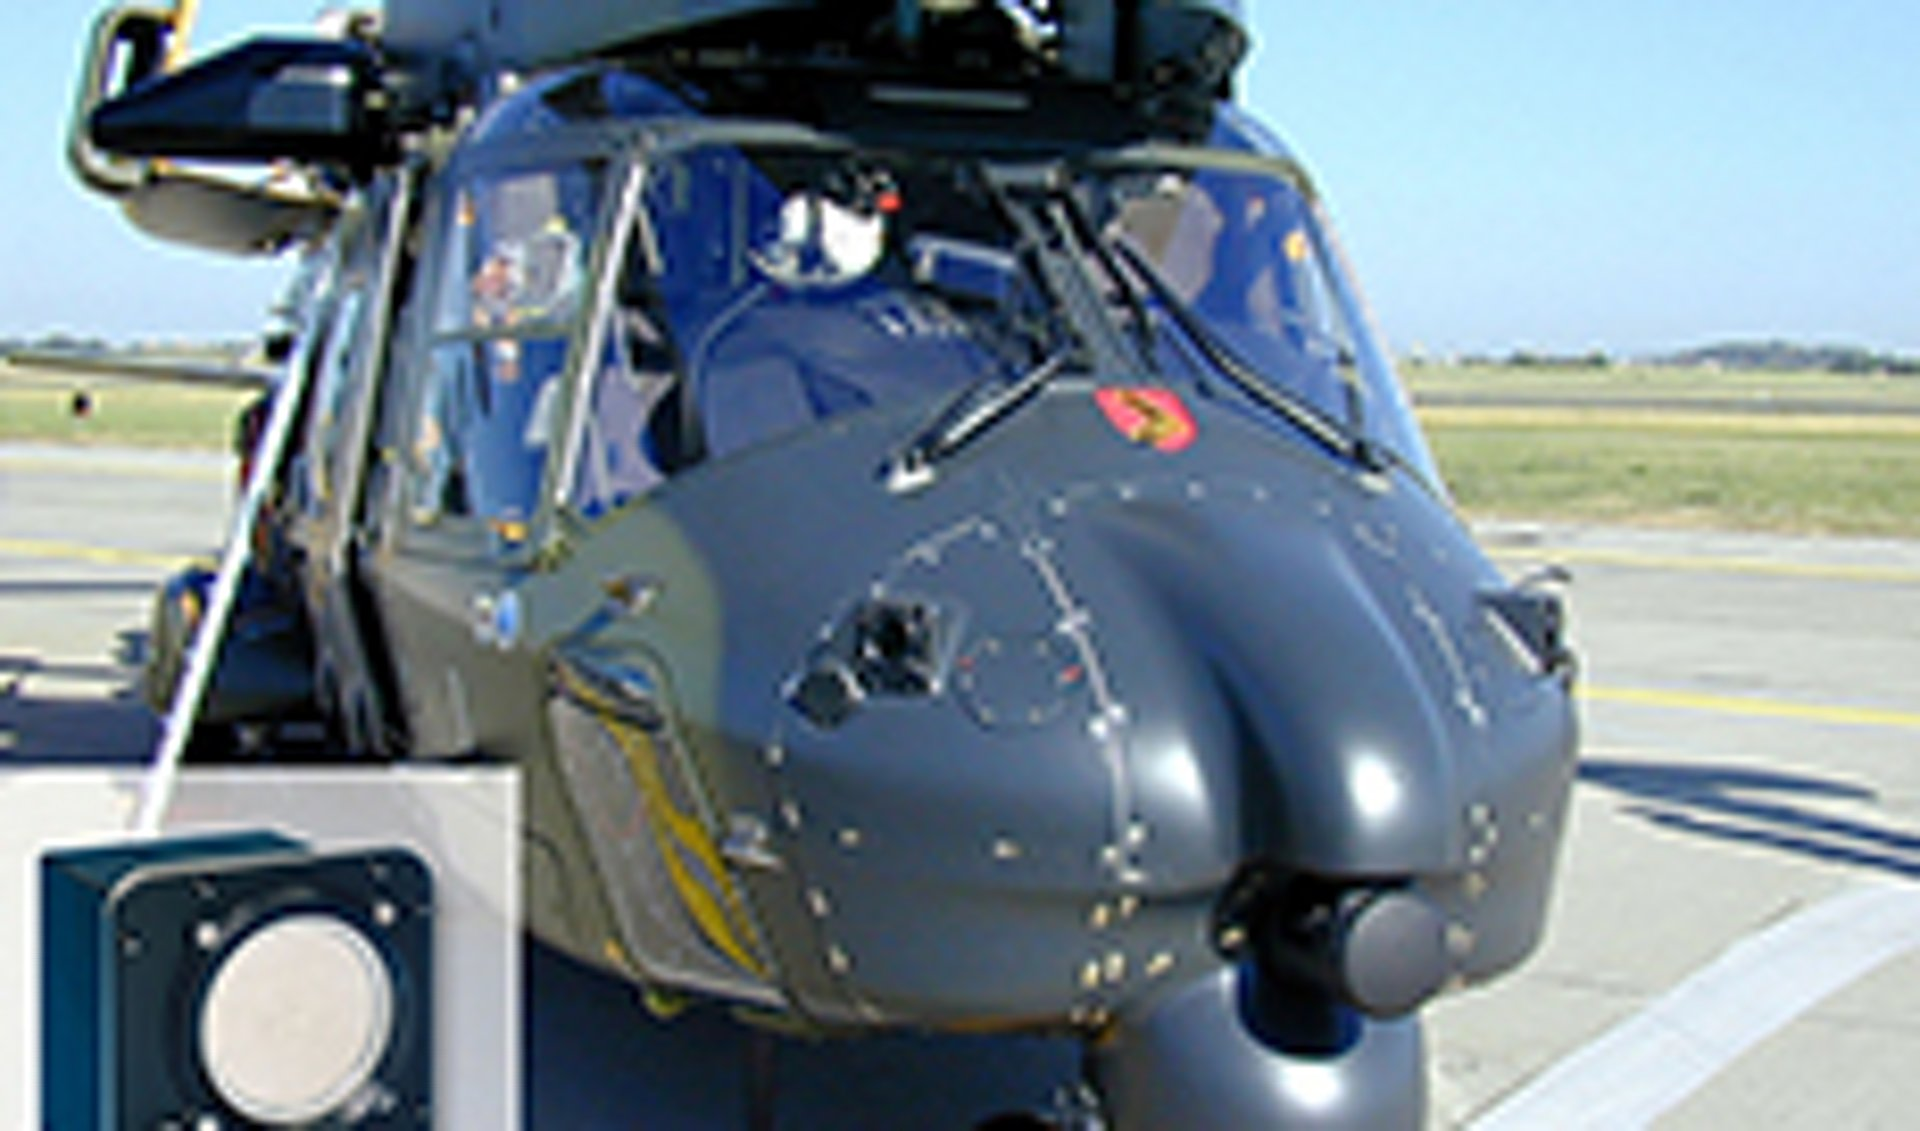 MILDS forward sensor heads, seen here in the NH90 helicopter configuration